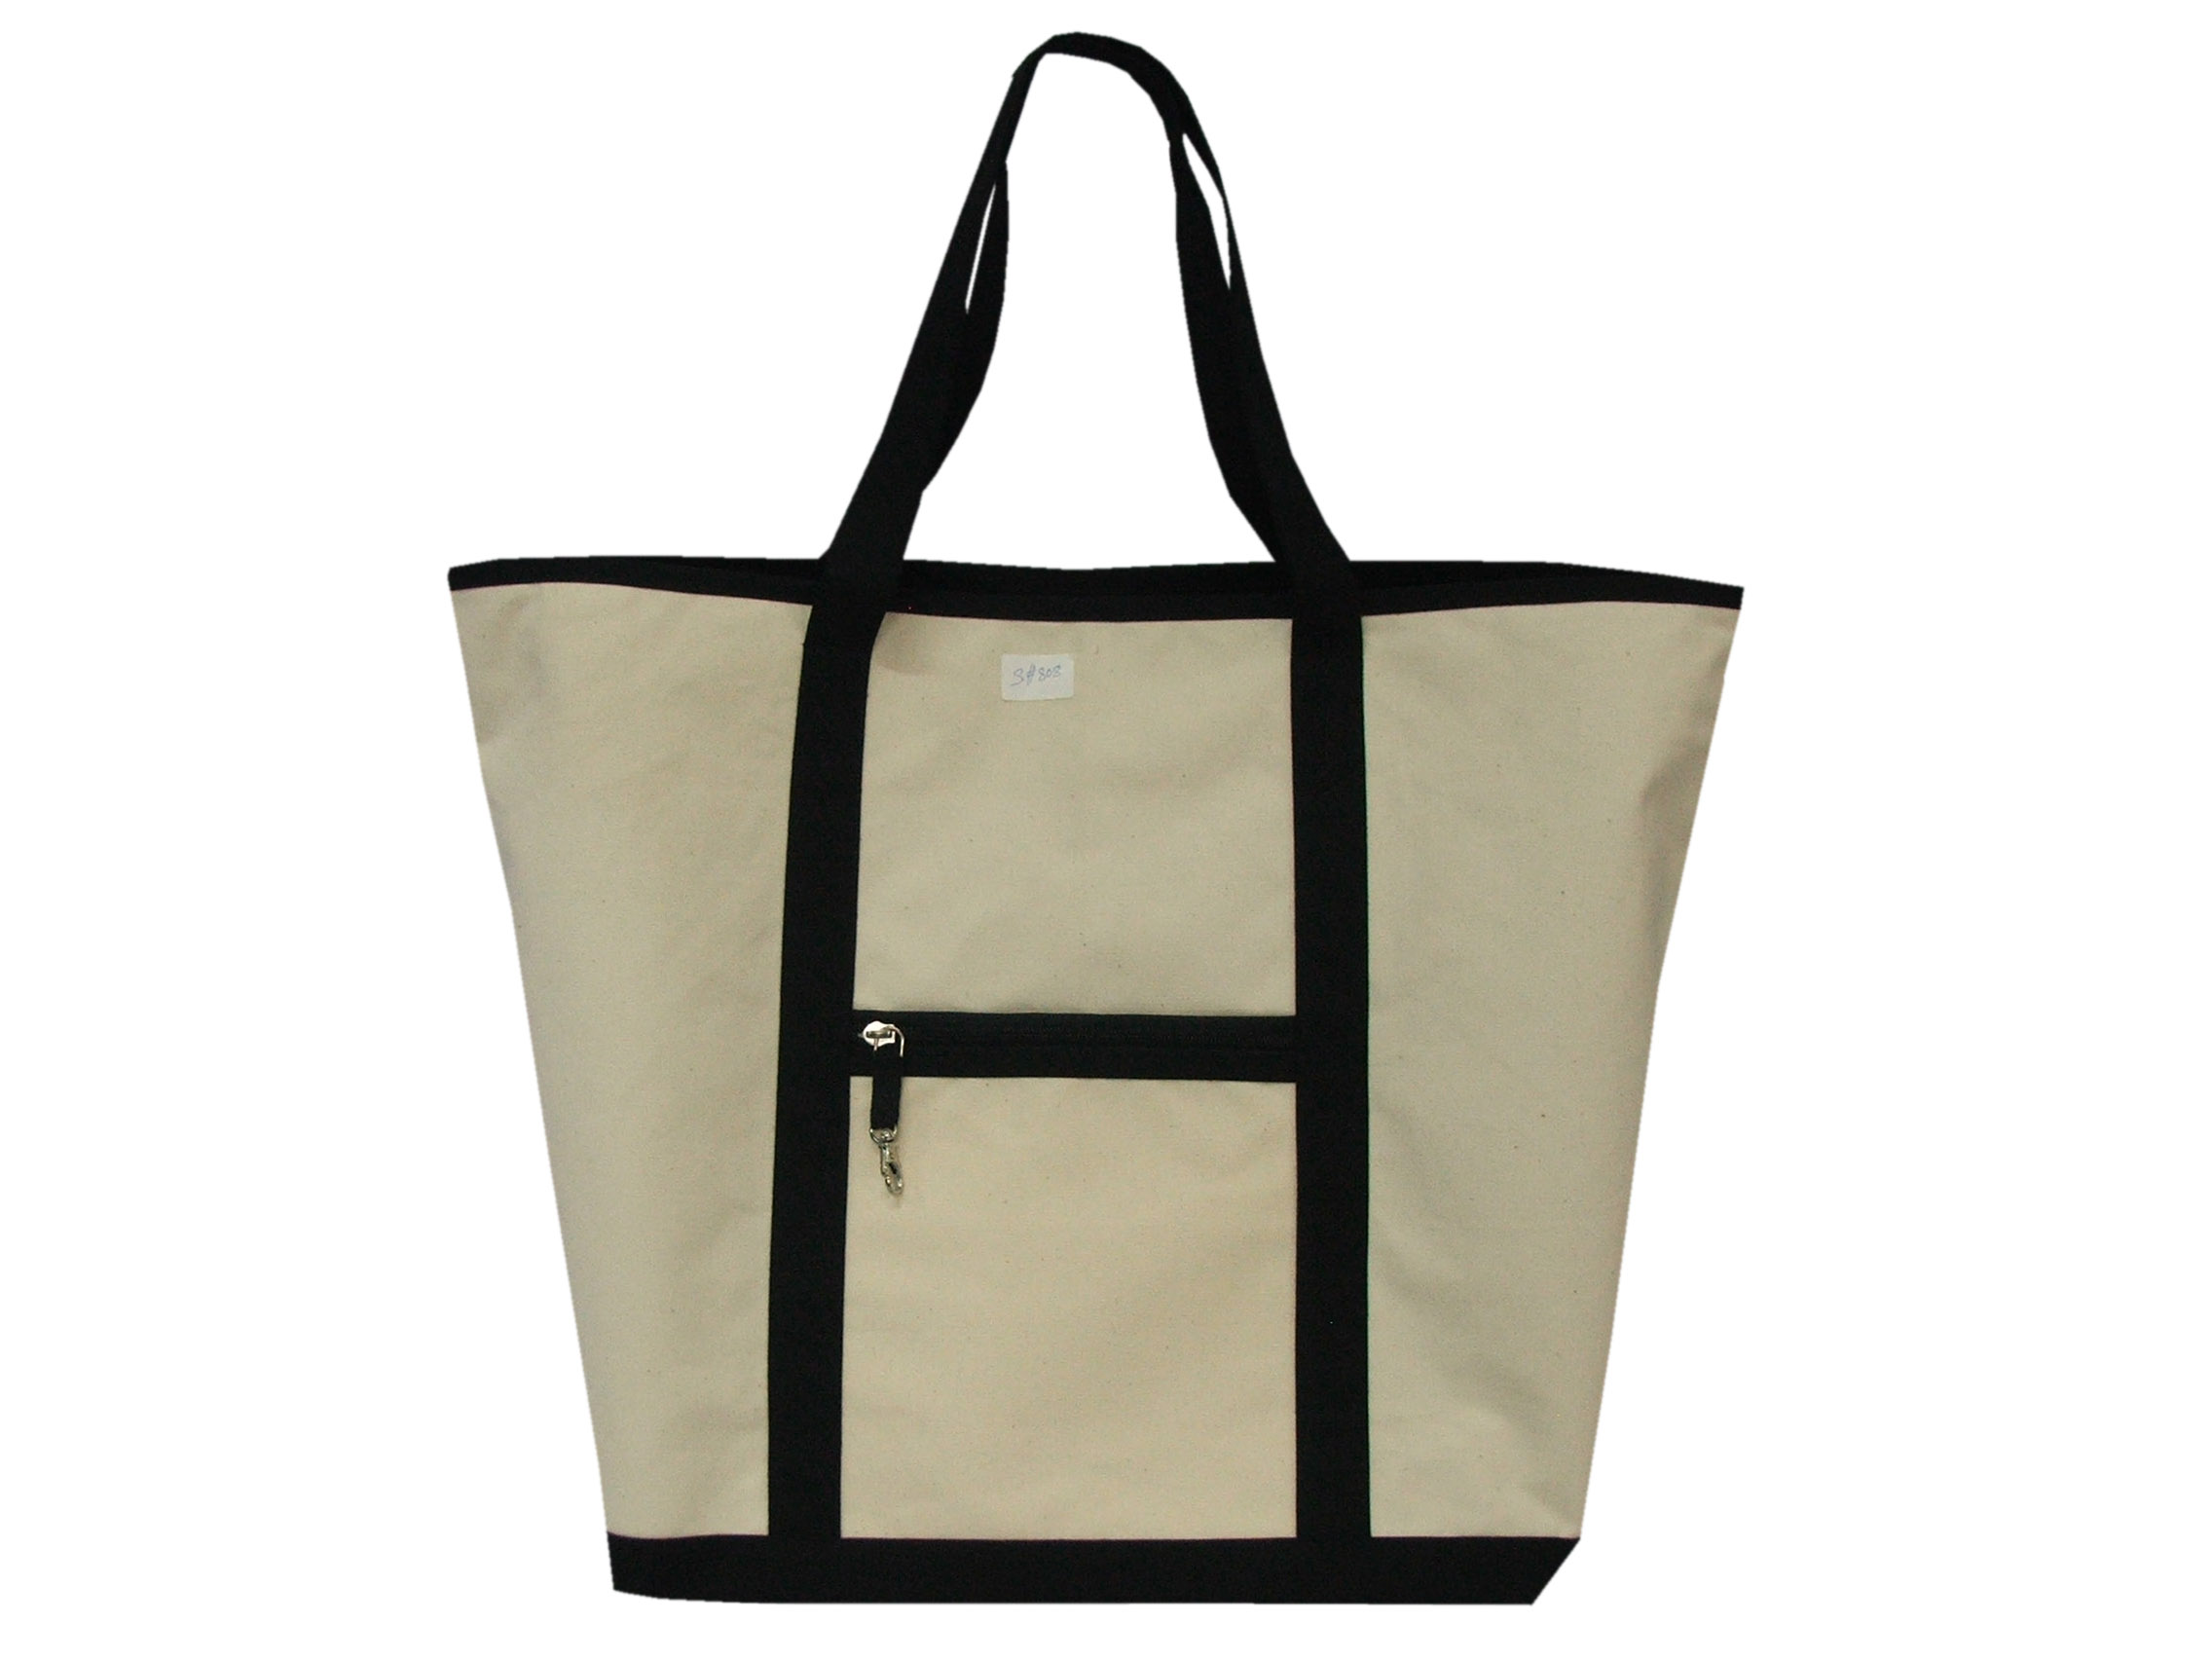 Deluxe Recycled Organic Cotton Tote Bag